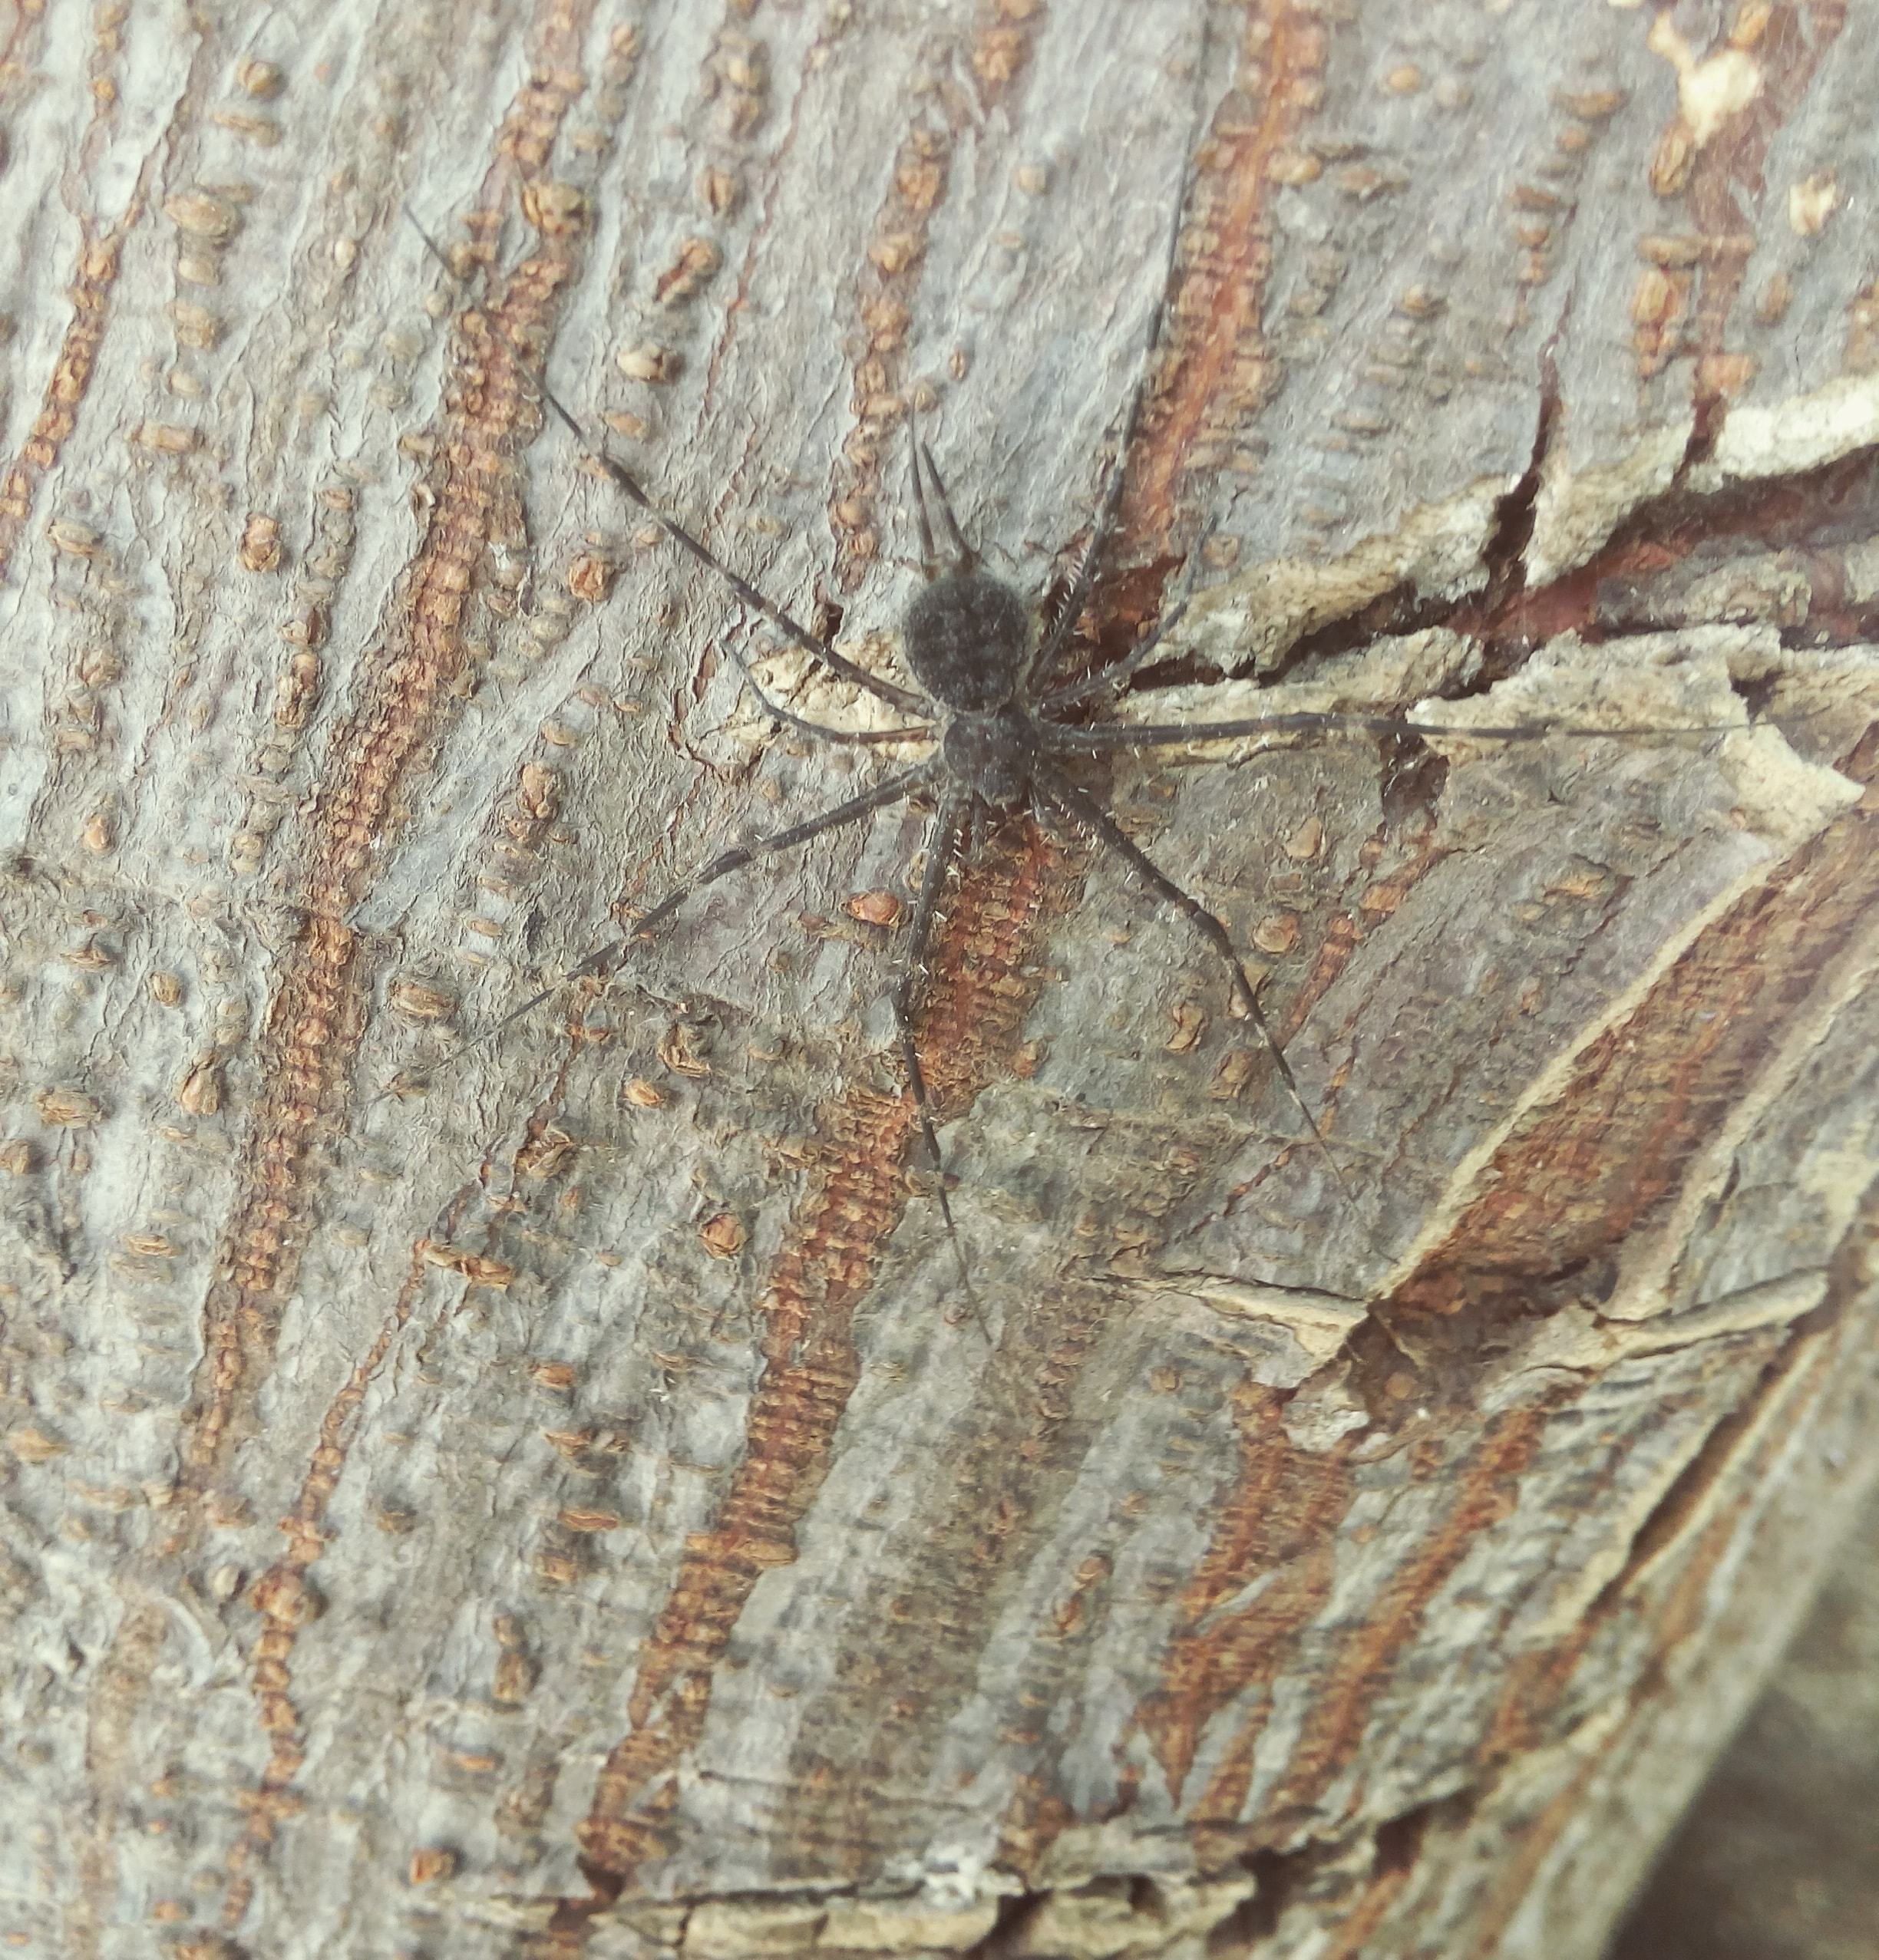 Picture of Hersiliidae (Two-tailed Spiders) - Dorsal